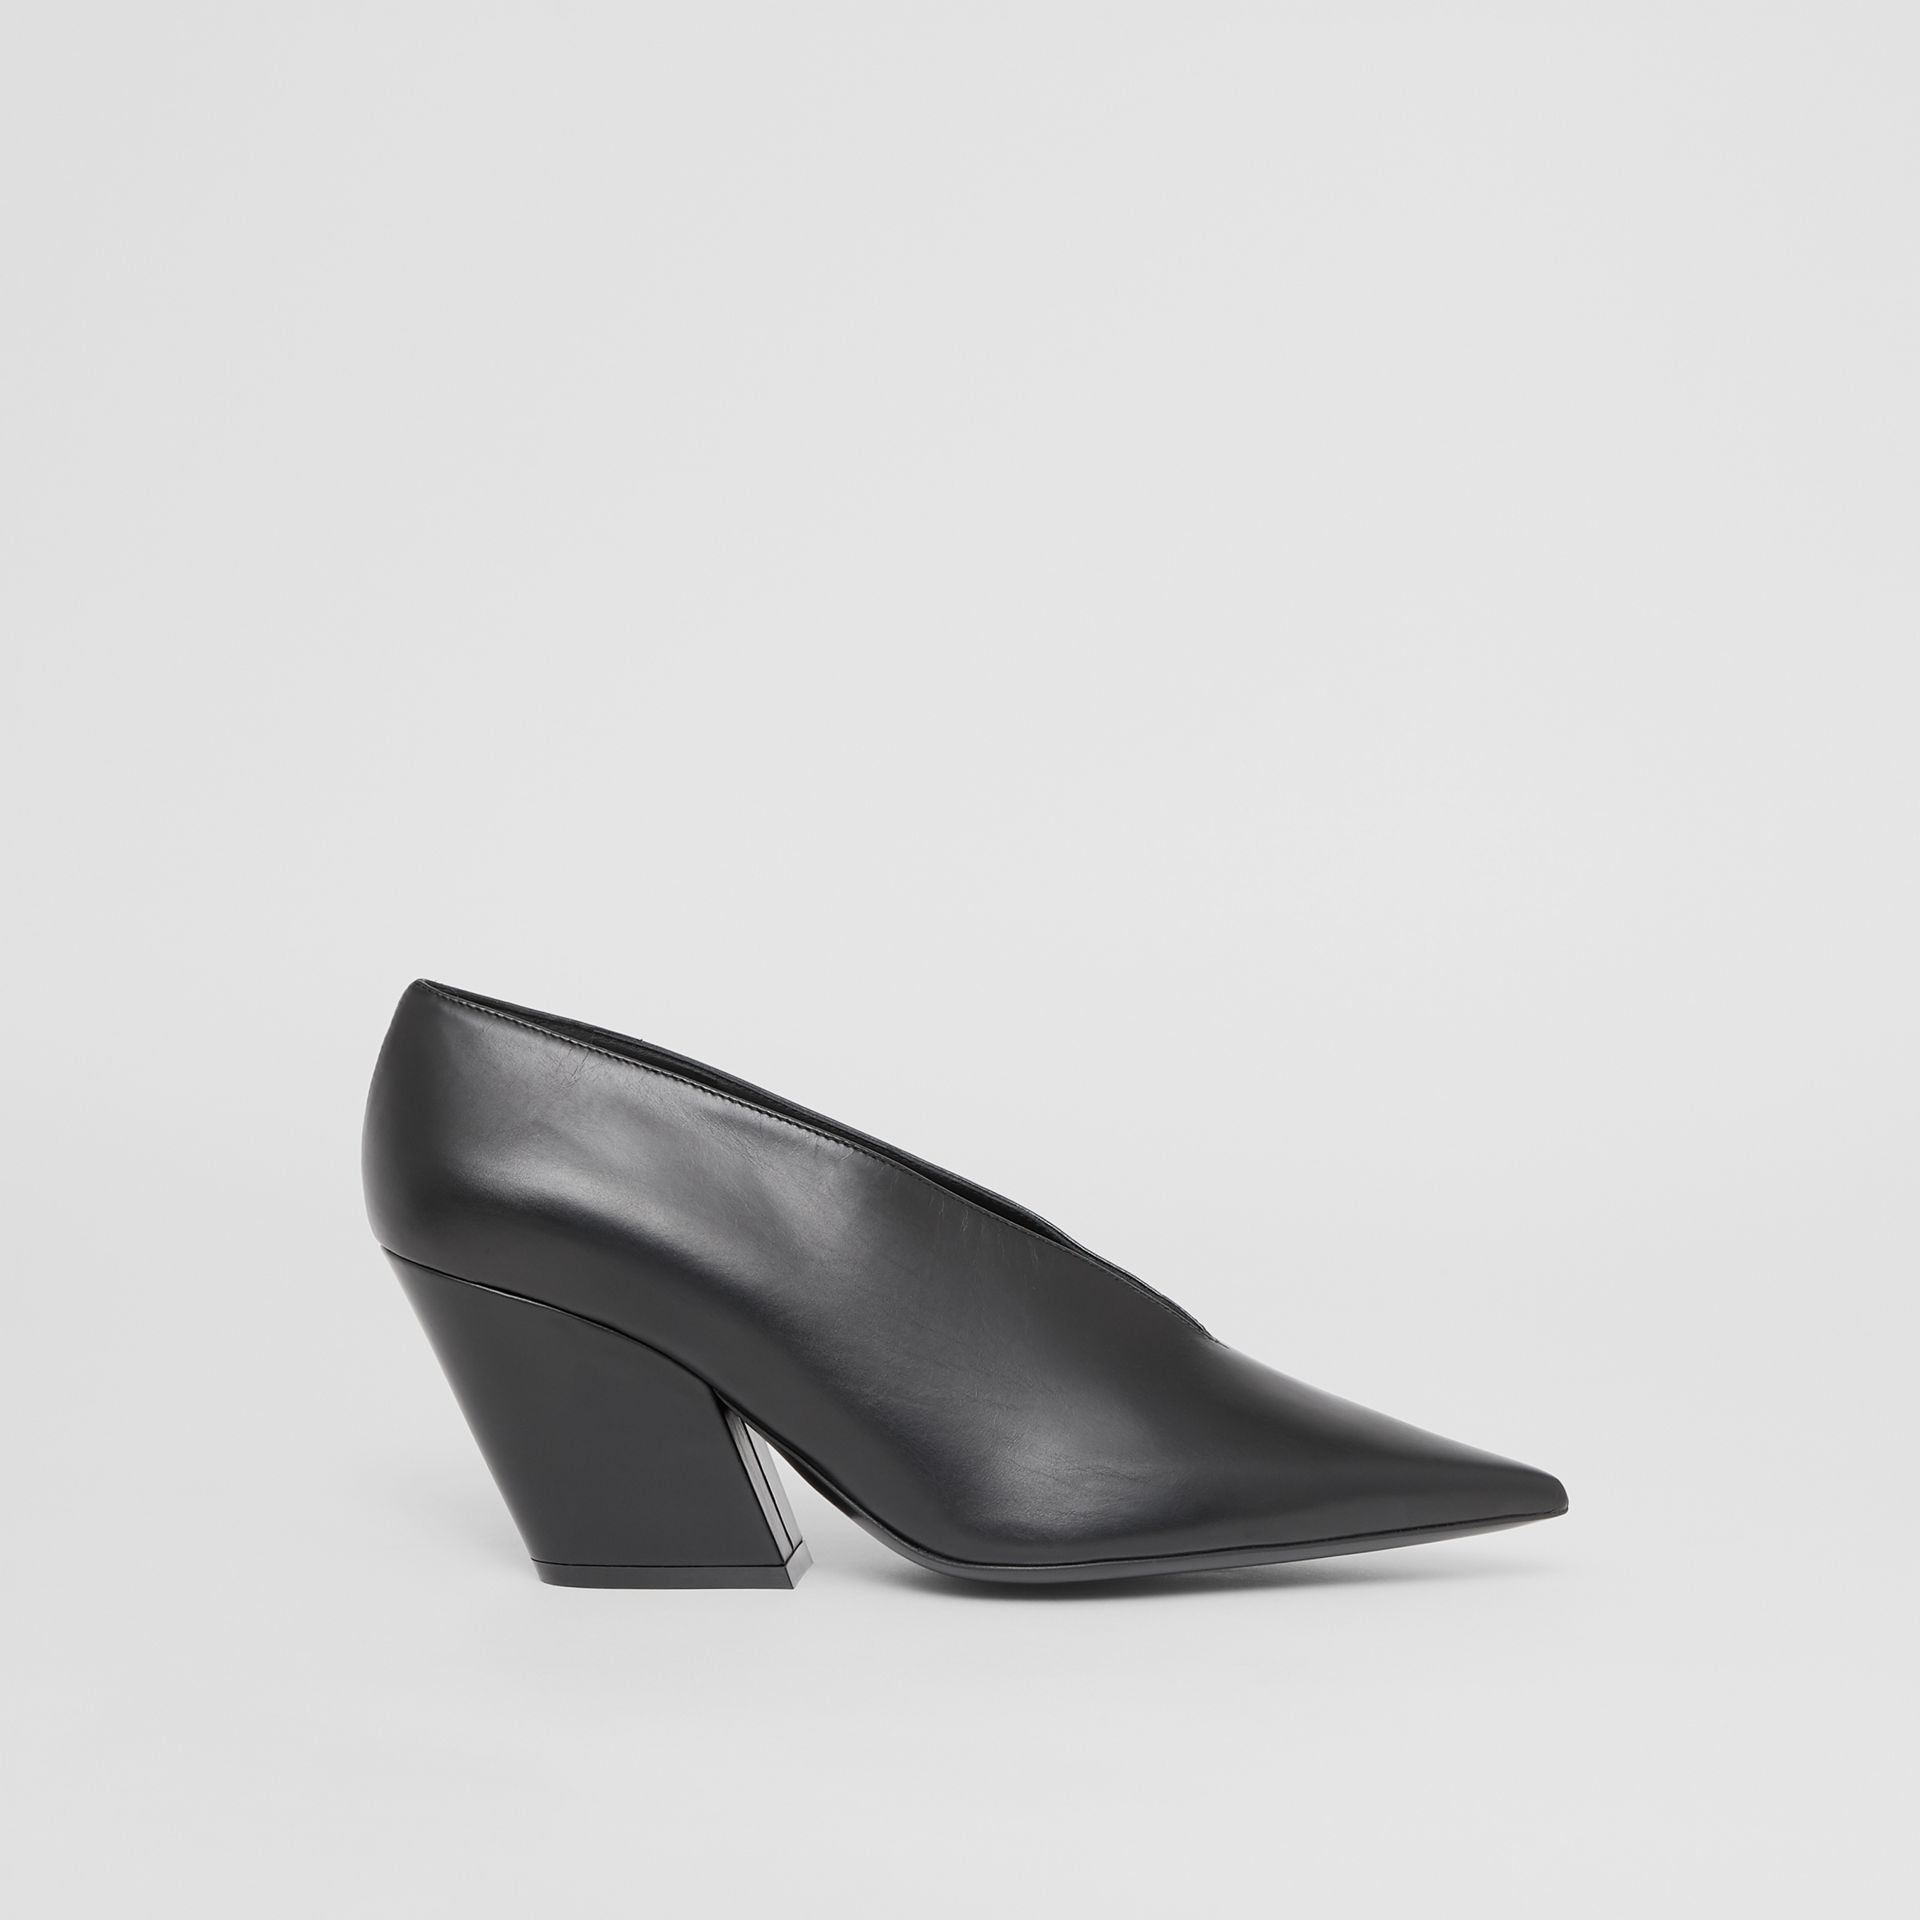 Leather Point-toe Pumps in Black - Women | Burberry - gallery image 5